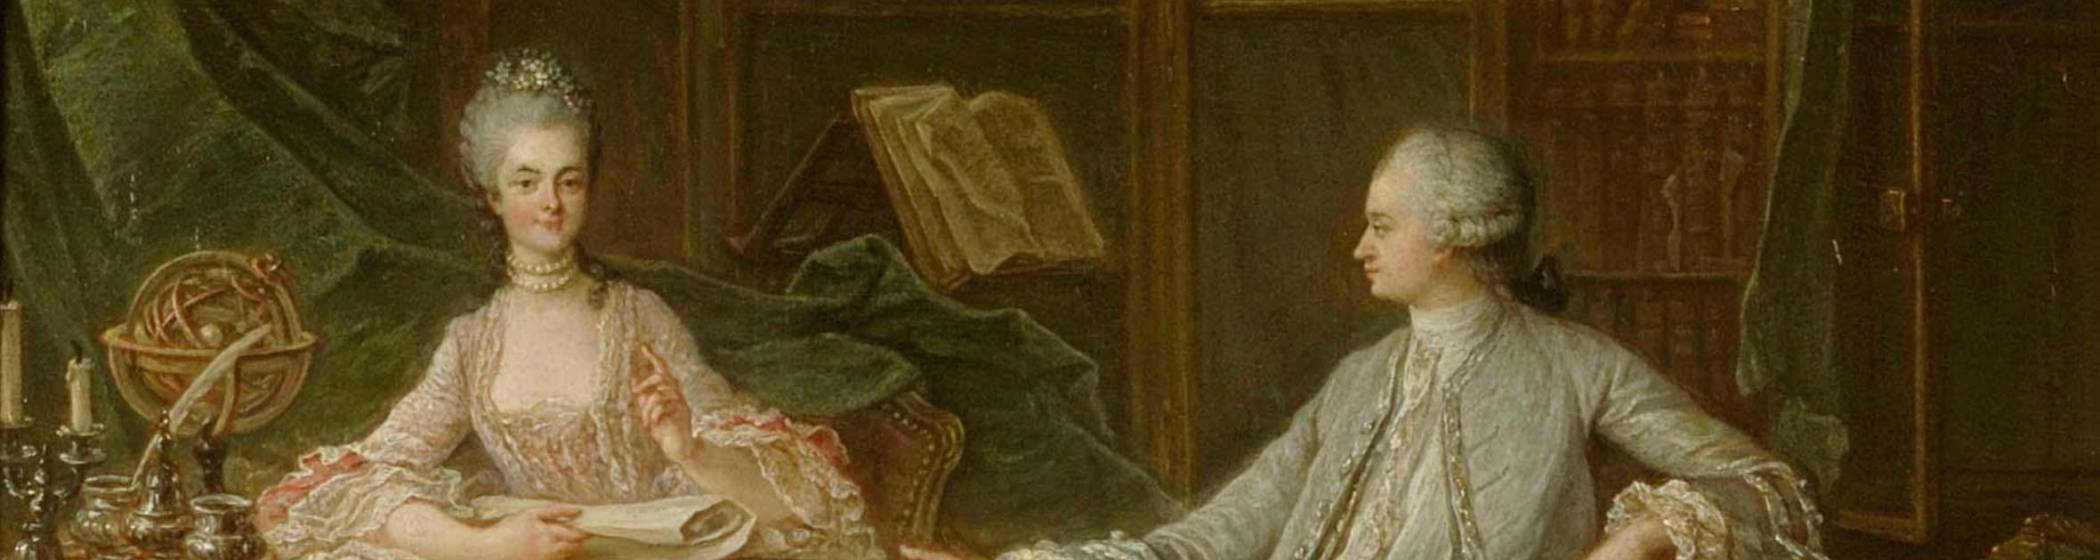 A Young Man and a Woman Discussing the Sciences in a Library by François Guérin